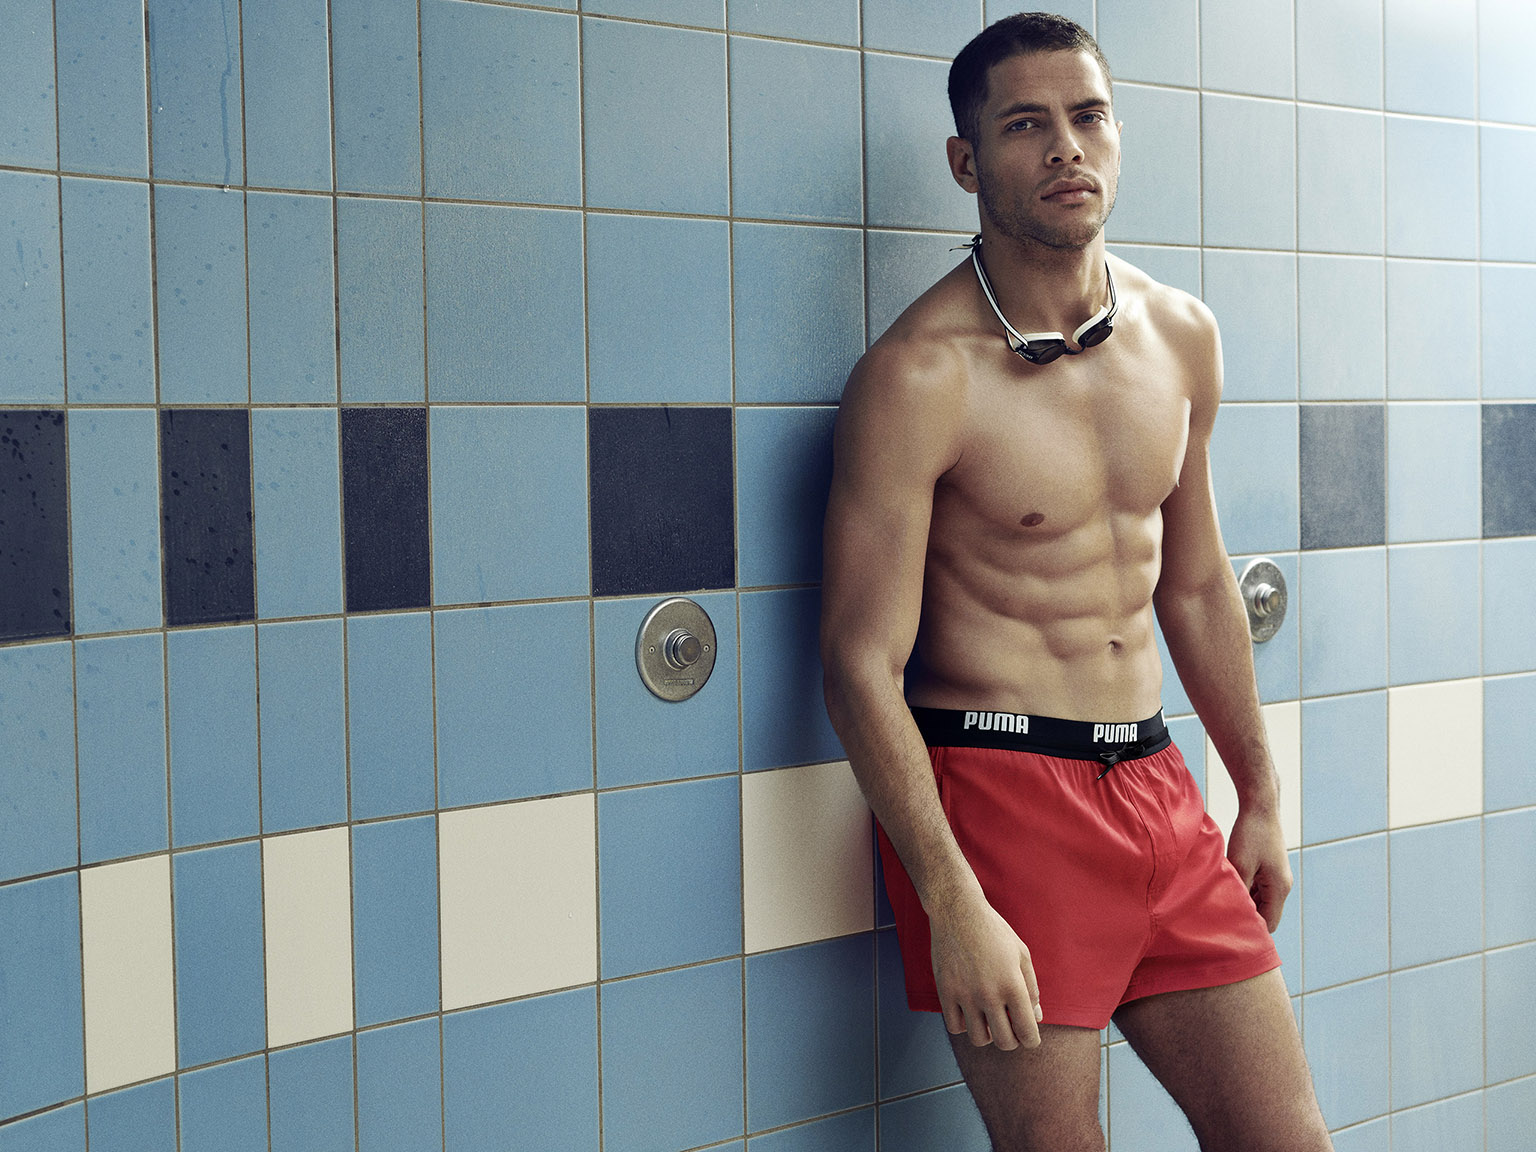 PUMA® - PUMA returns to the pool with new swimwear collection